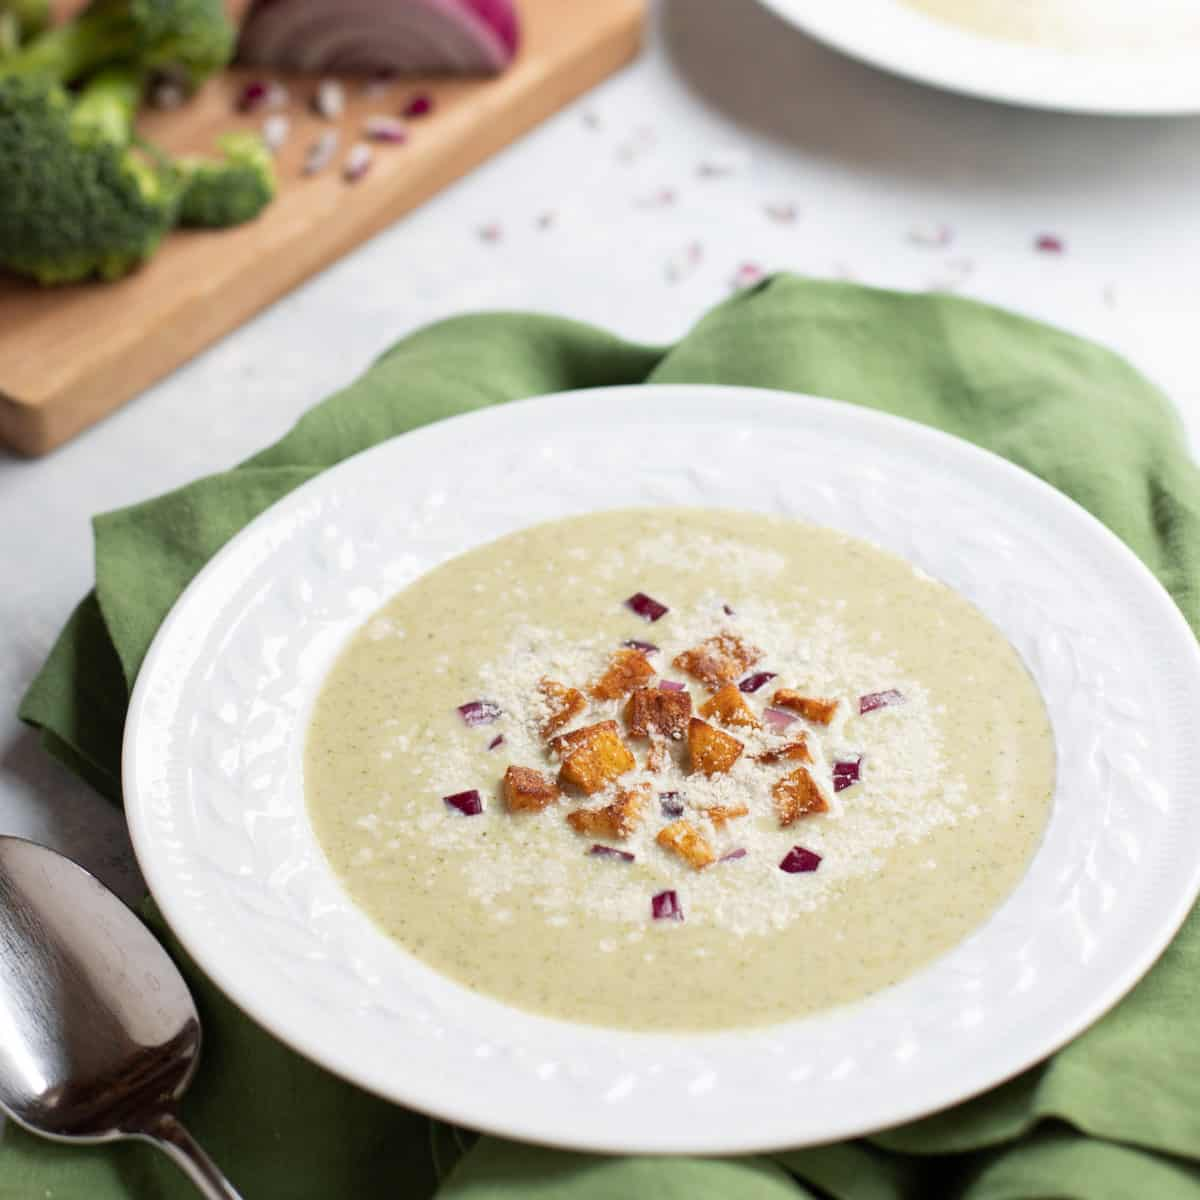 White bowl with Healthy Broccoli Soup topped with Potato Croutons, red onion and Parmesan